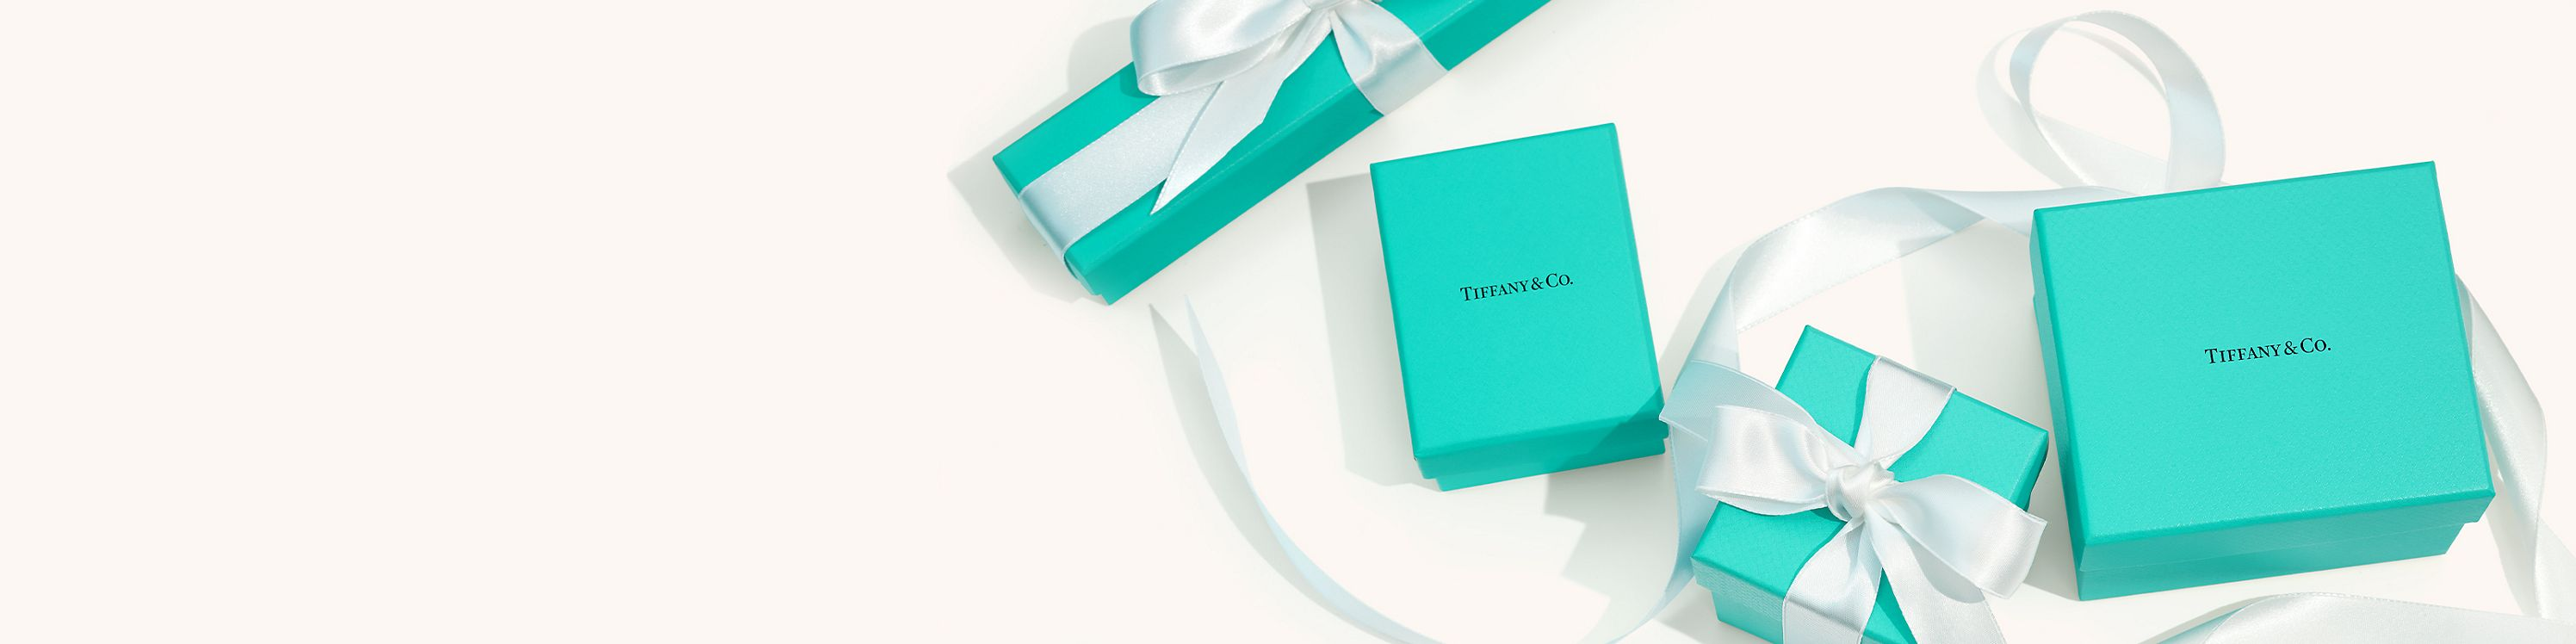 Regalos de Tiffany & Co. de hasta 500 €